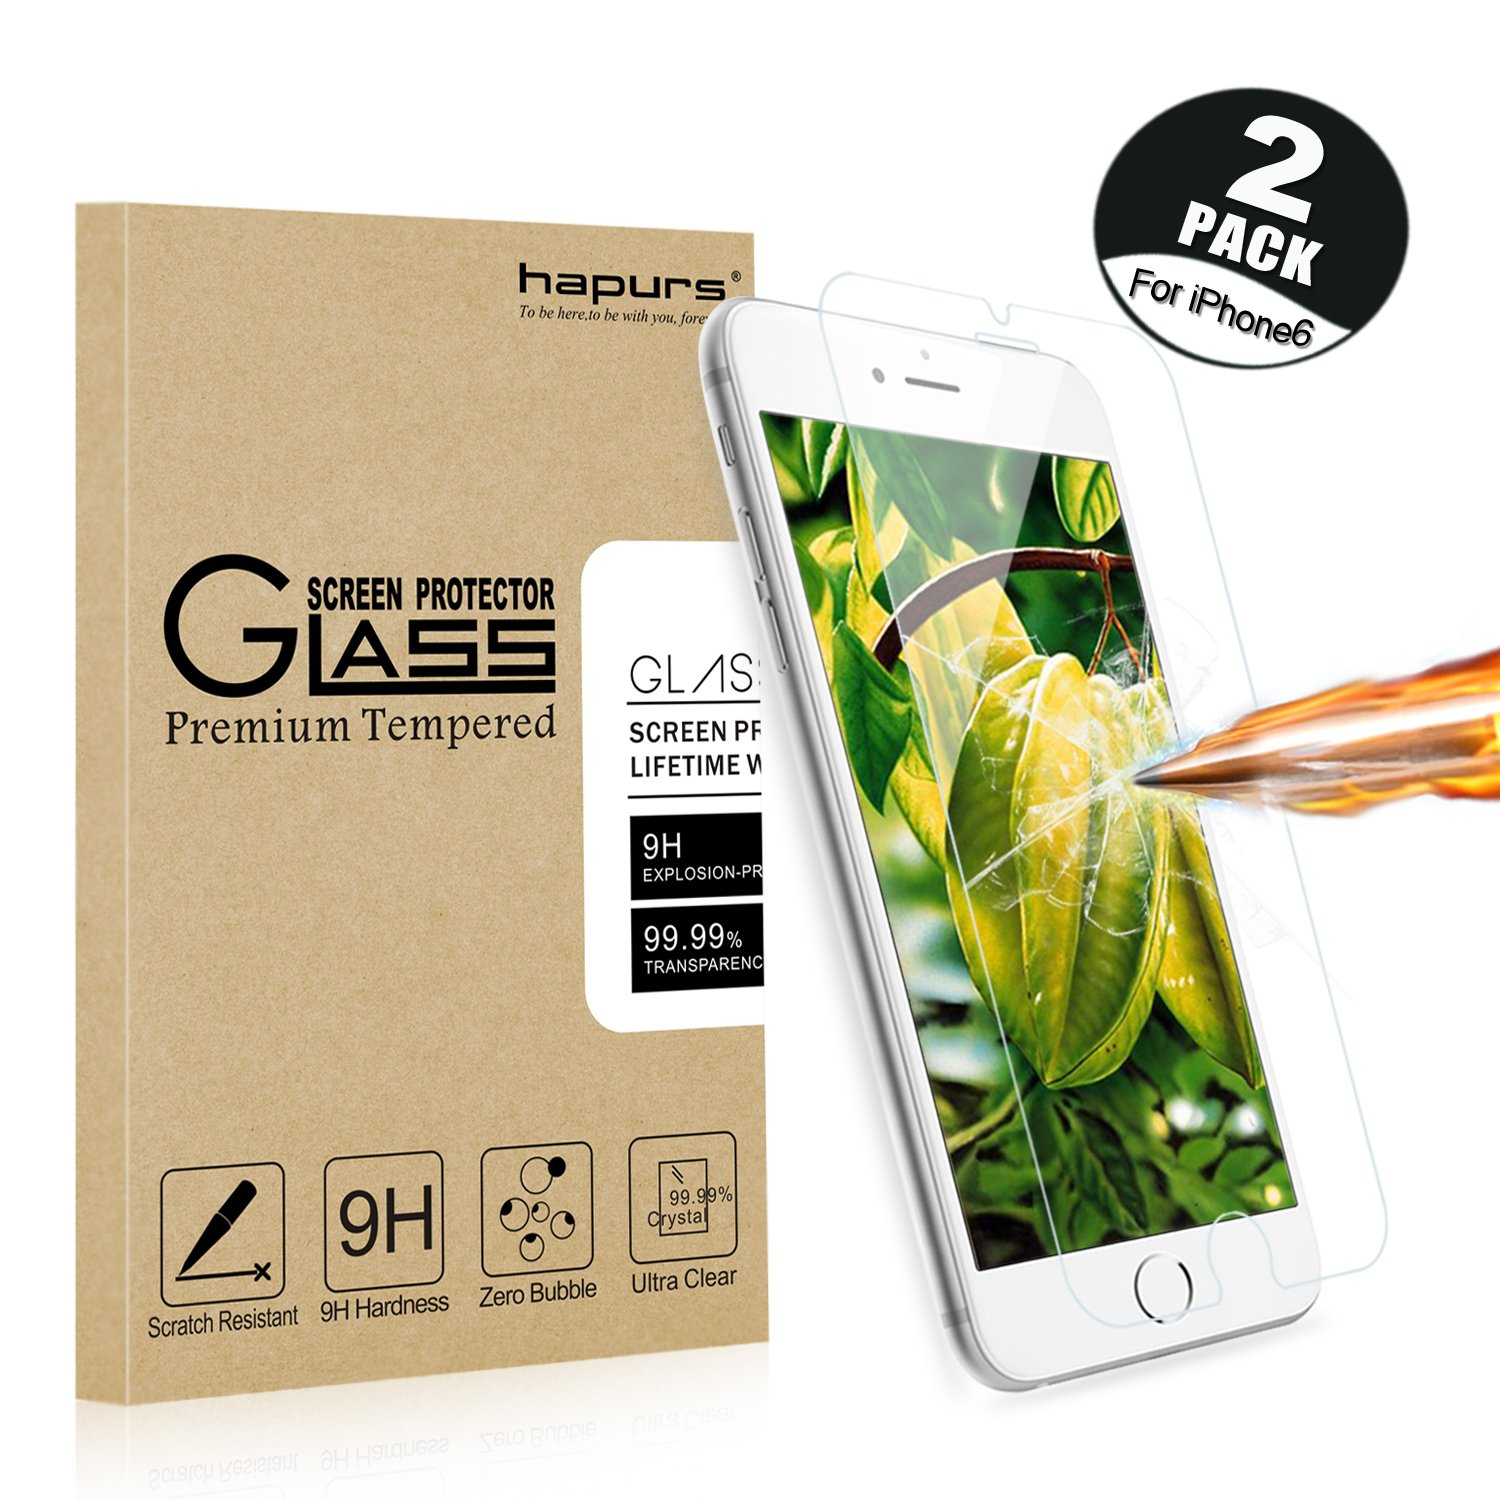 [2-Pack] iPhone 6S / 6 Screen Protector, Hapurs iPhone 6S iPhone 6 Tempered Glass Screen Protector 0.3mm Premium High Definition Shockproof Screen Film for iPhone 6S/6